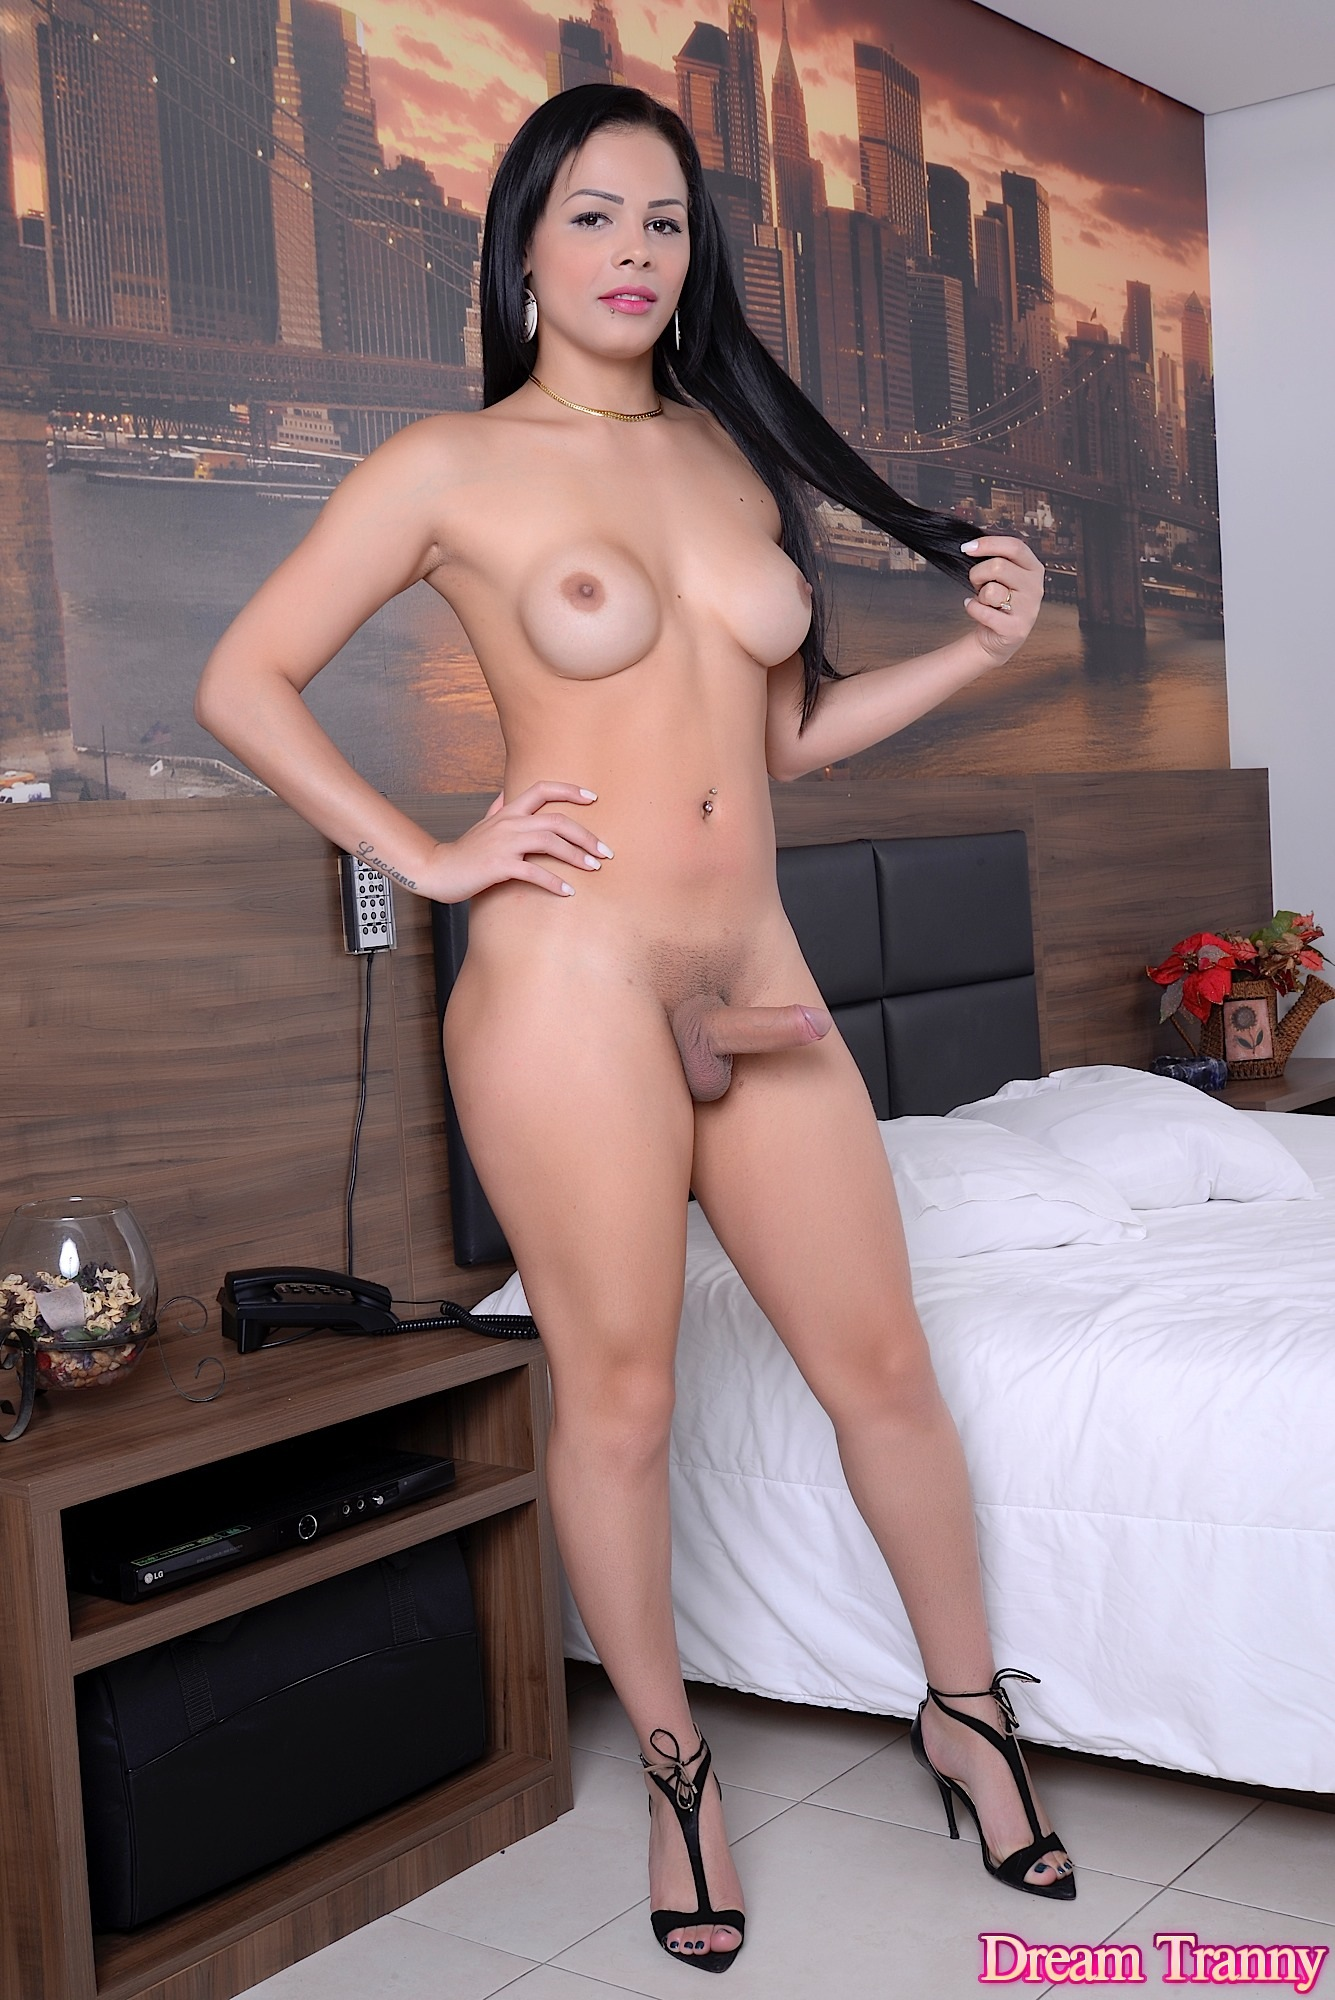 Tranny Nurse Bruna Castro gets naked for you | Dream Tranny